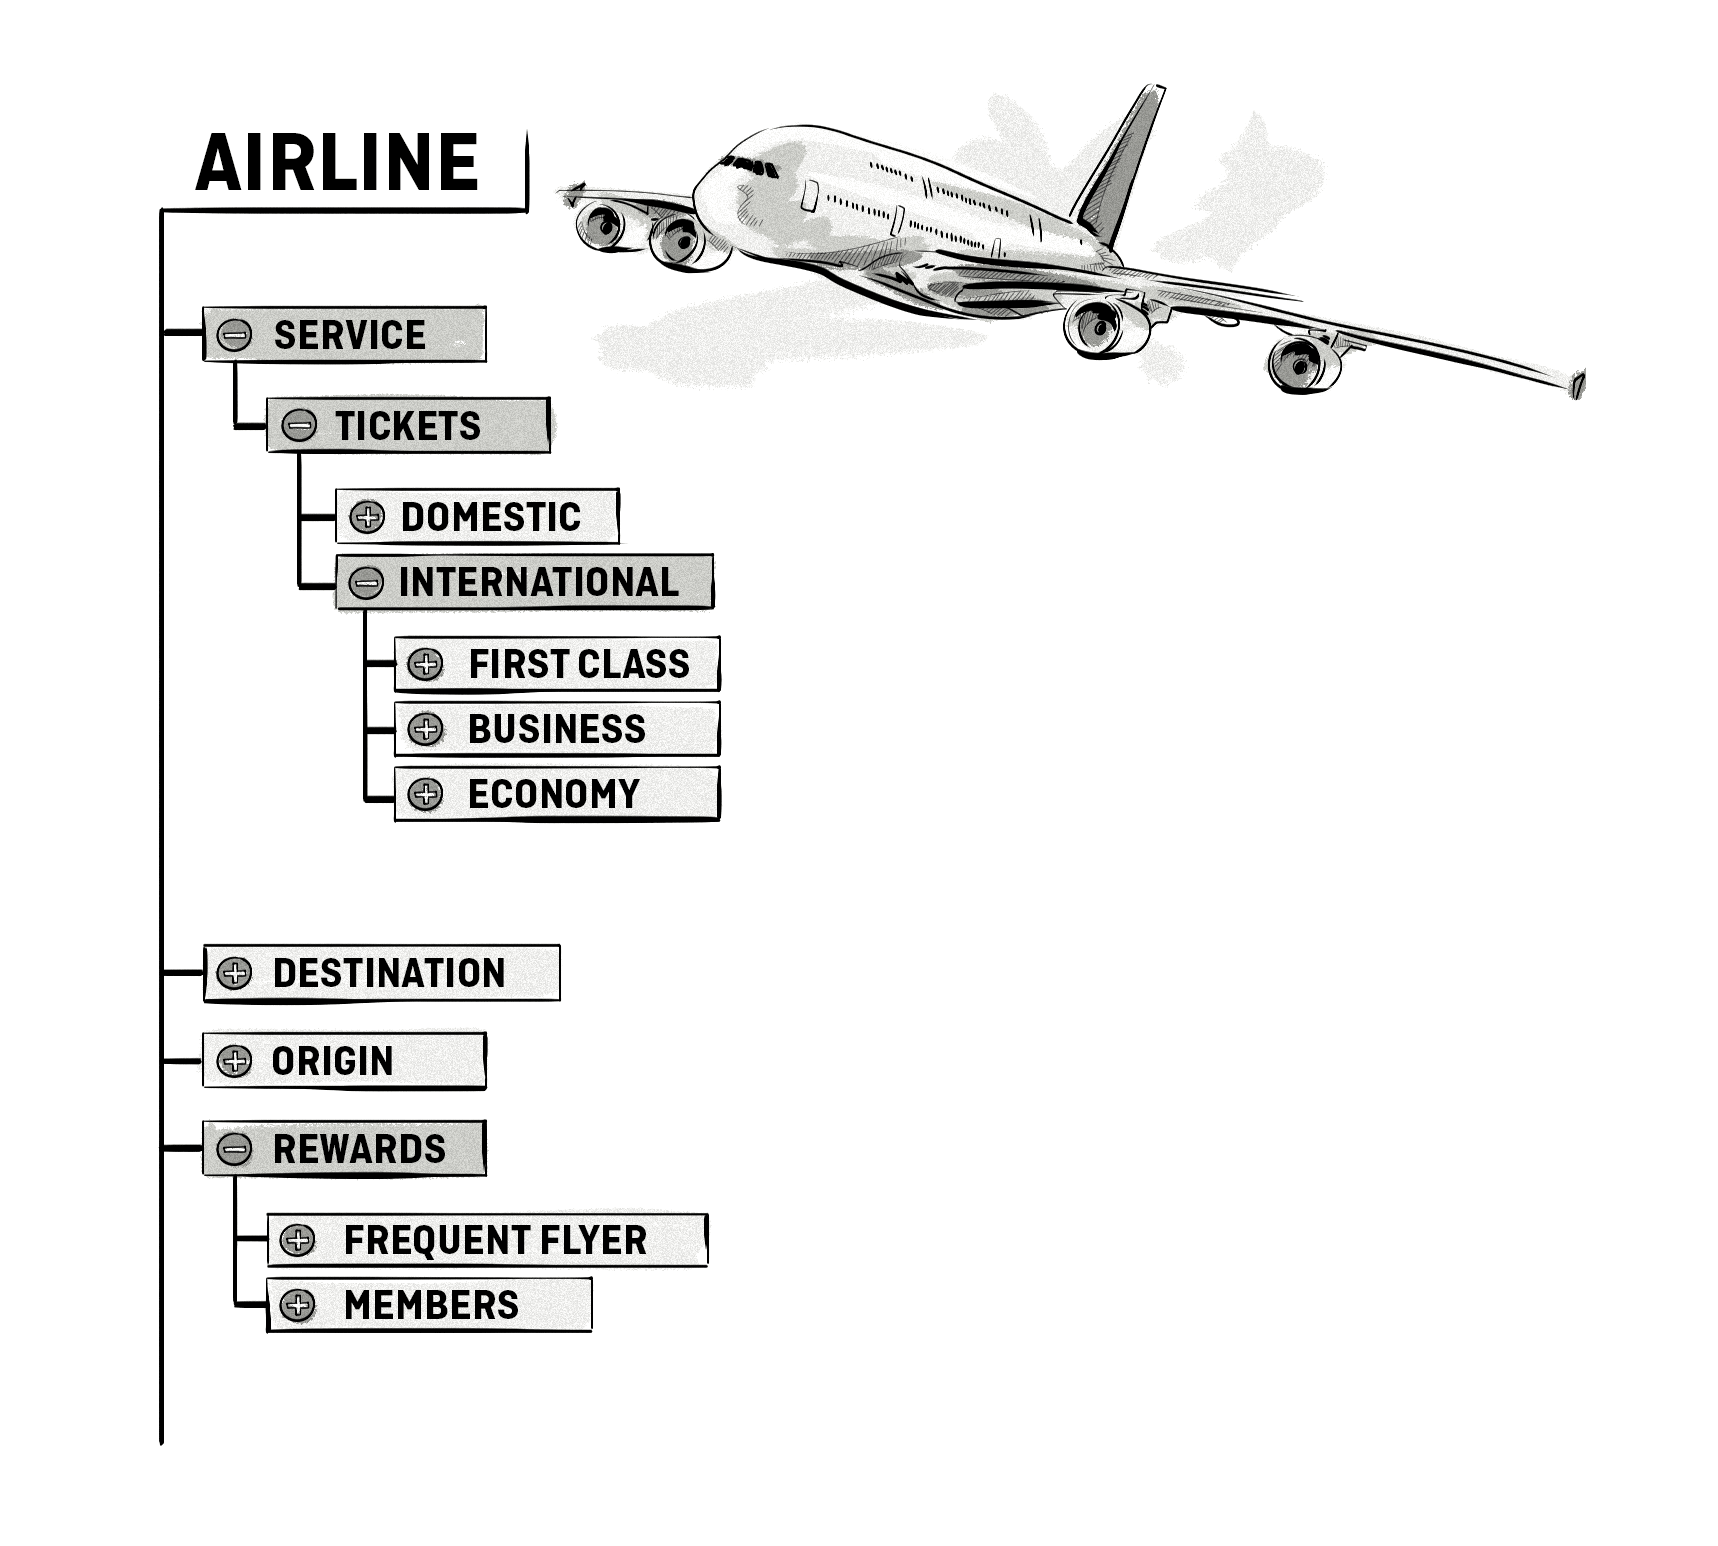 taxonomy for an airline